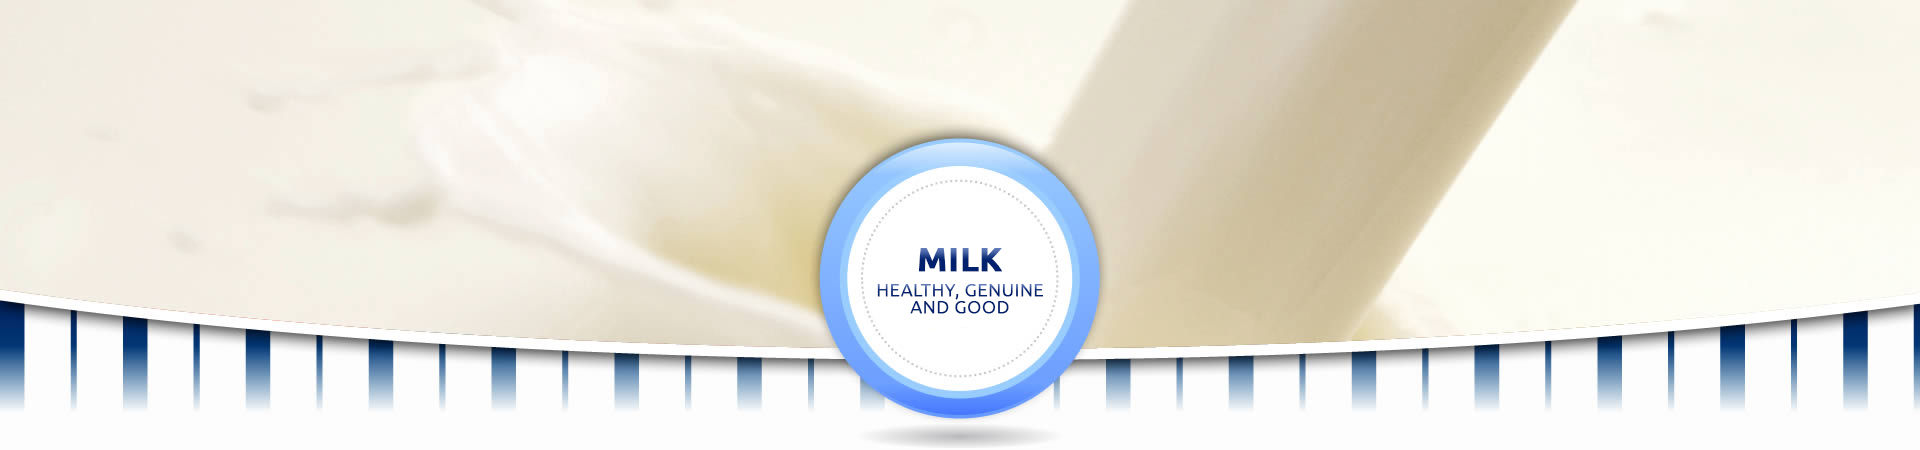 Milk - Products | National Foods Company | Tomato paste